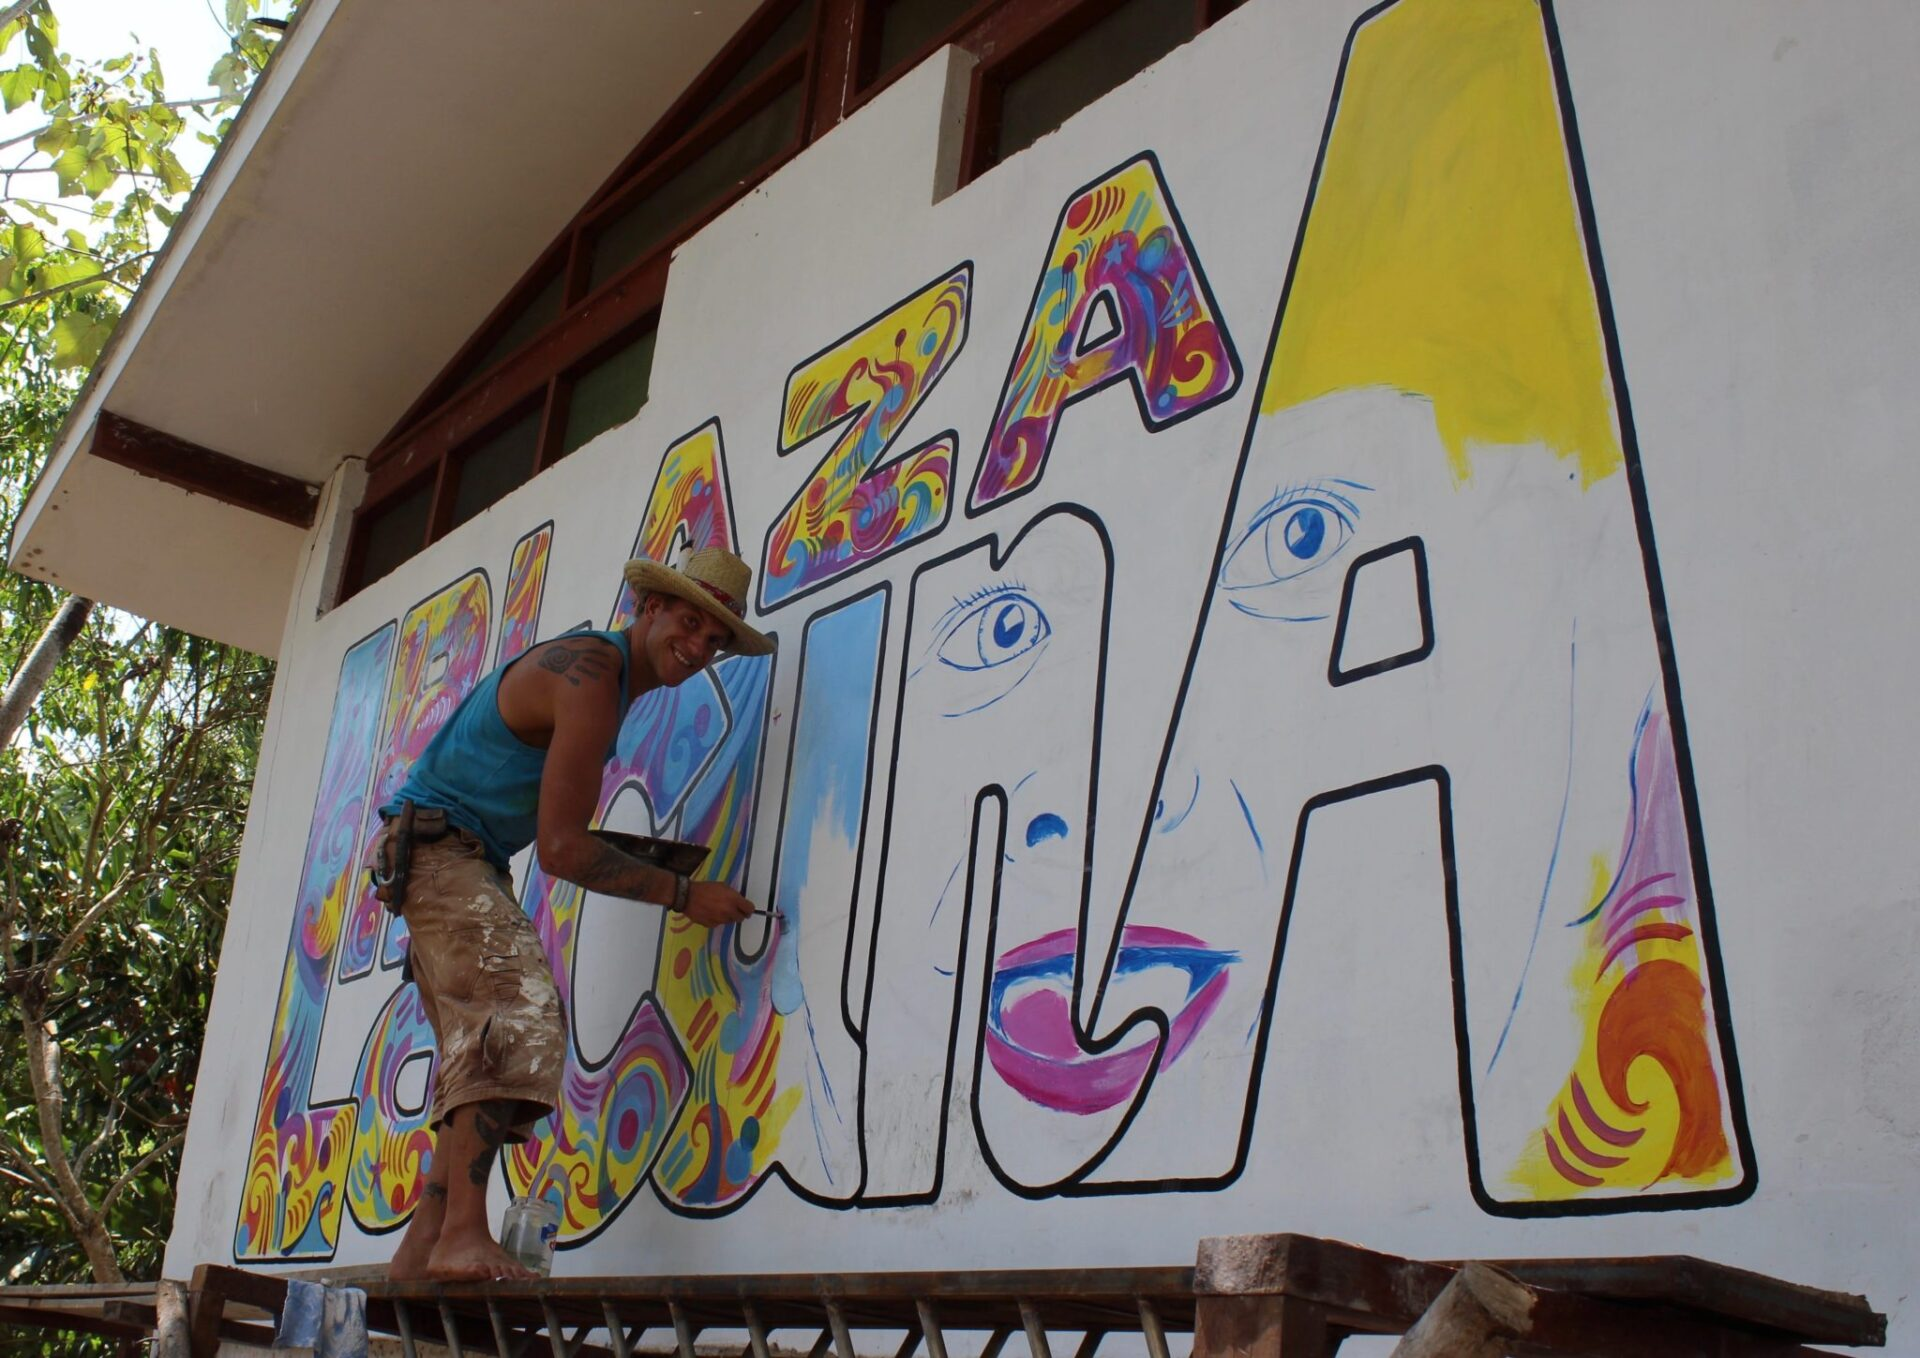 Metsa working on the sign for Plaza Lacuna